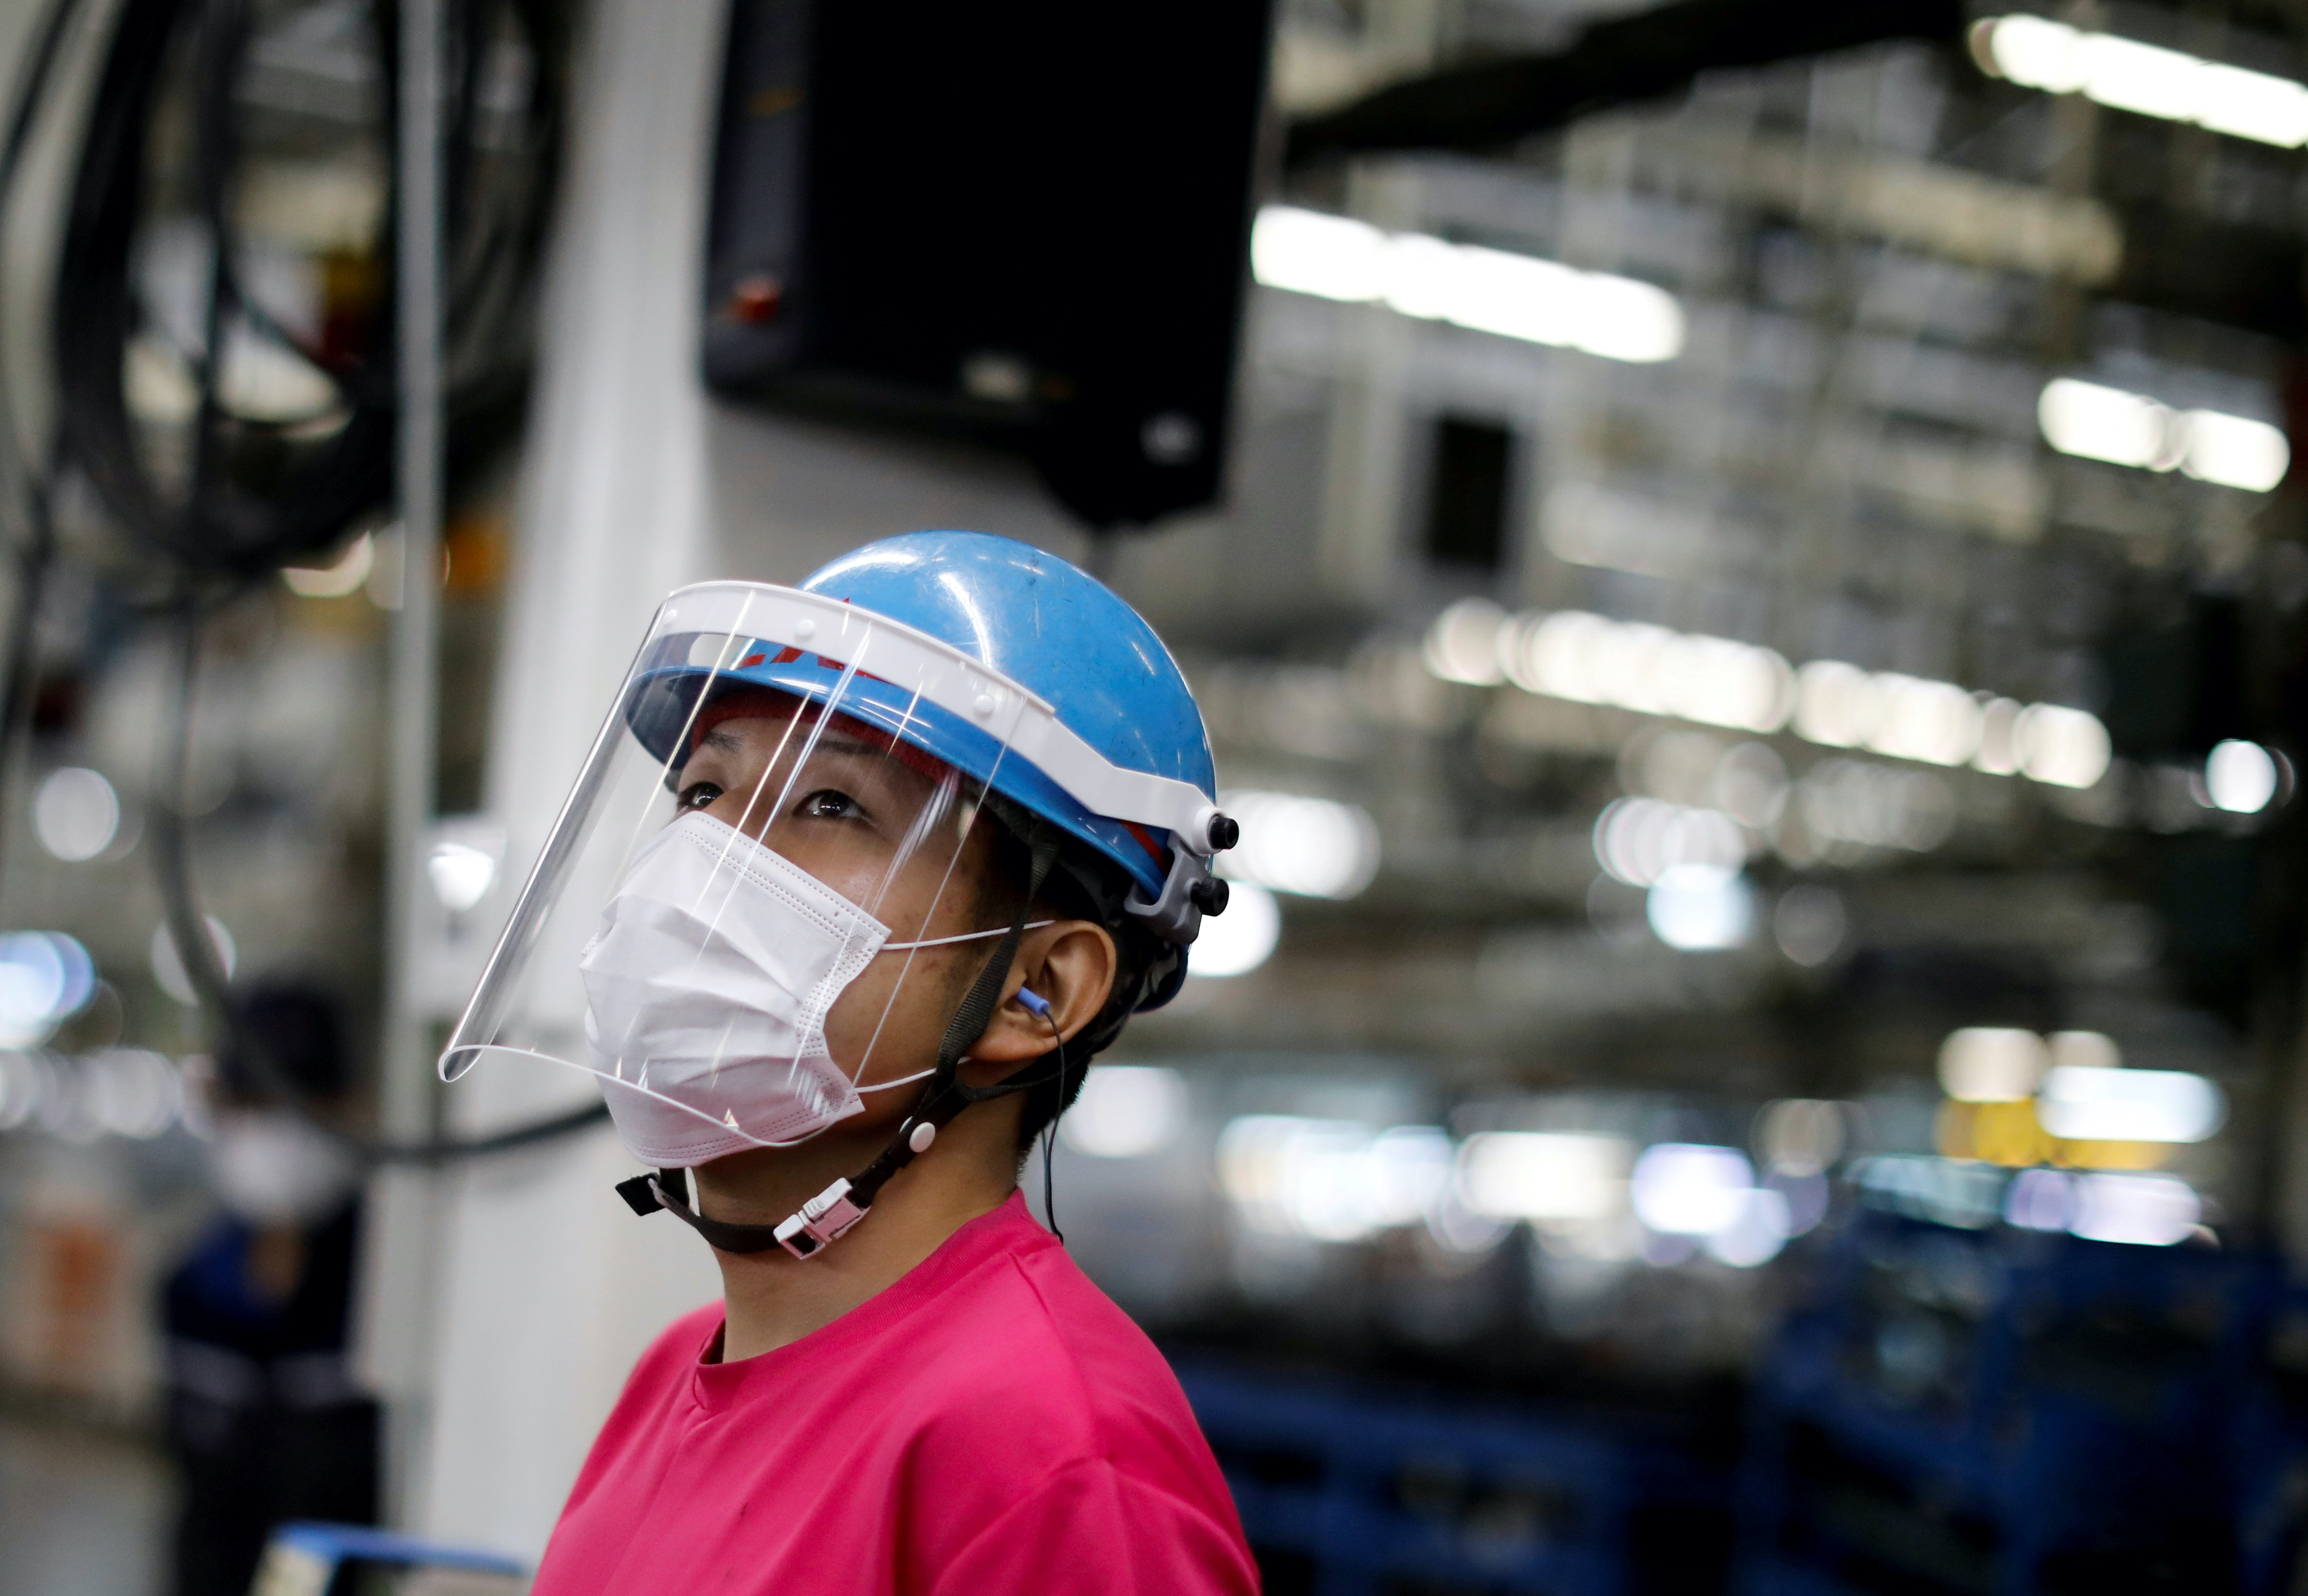 Japan's economy not spared in 2020